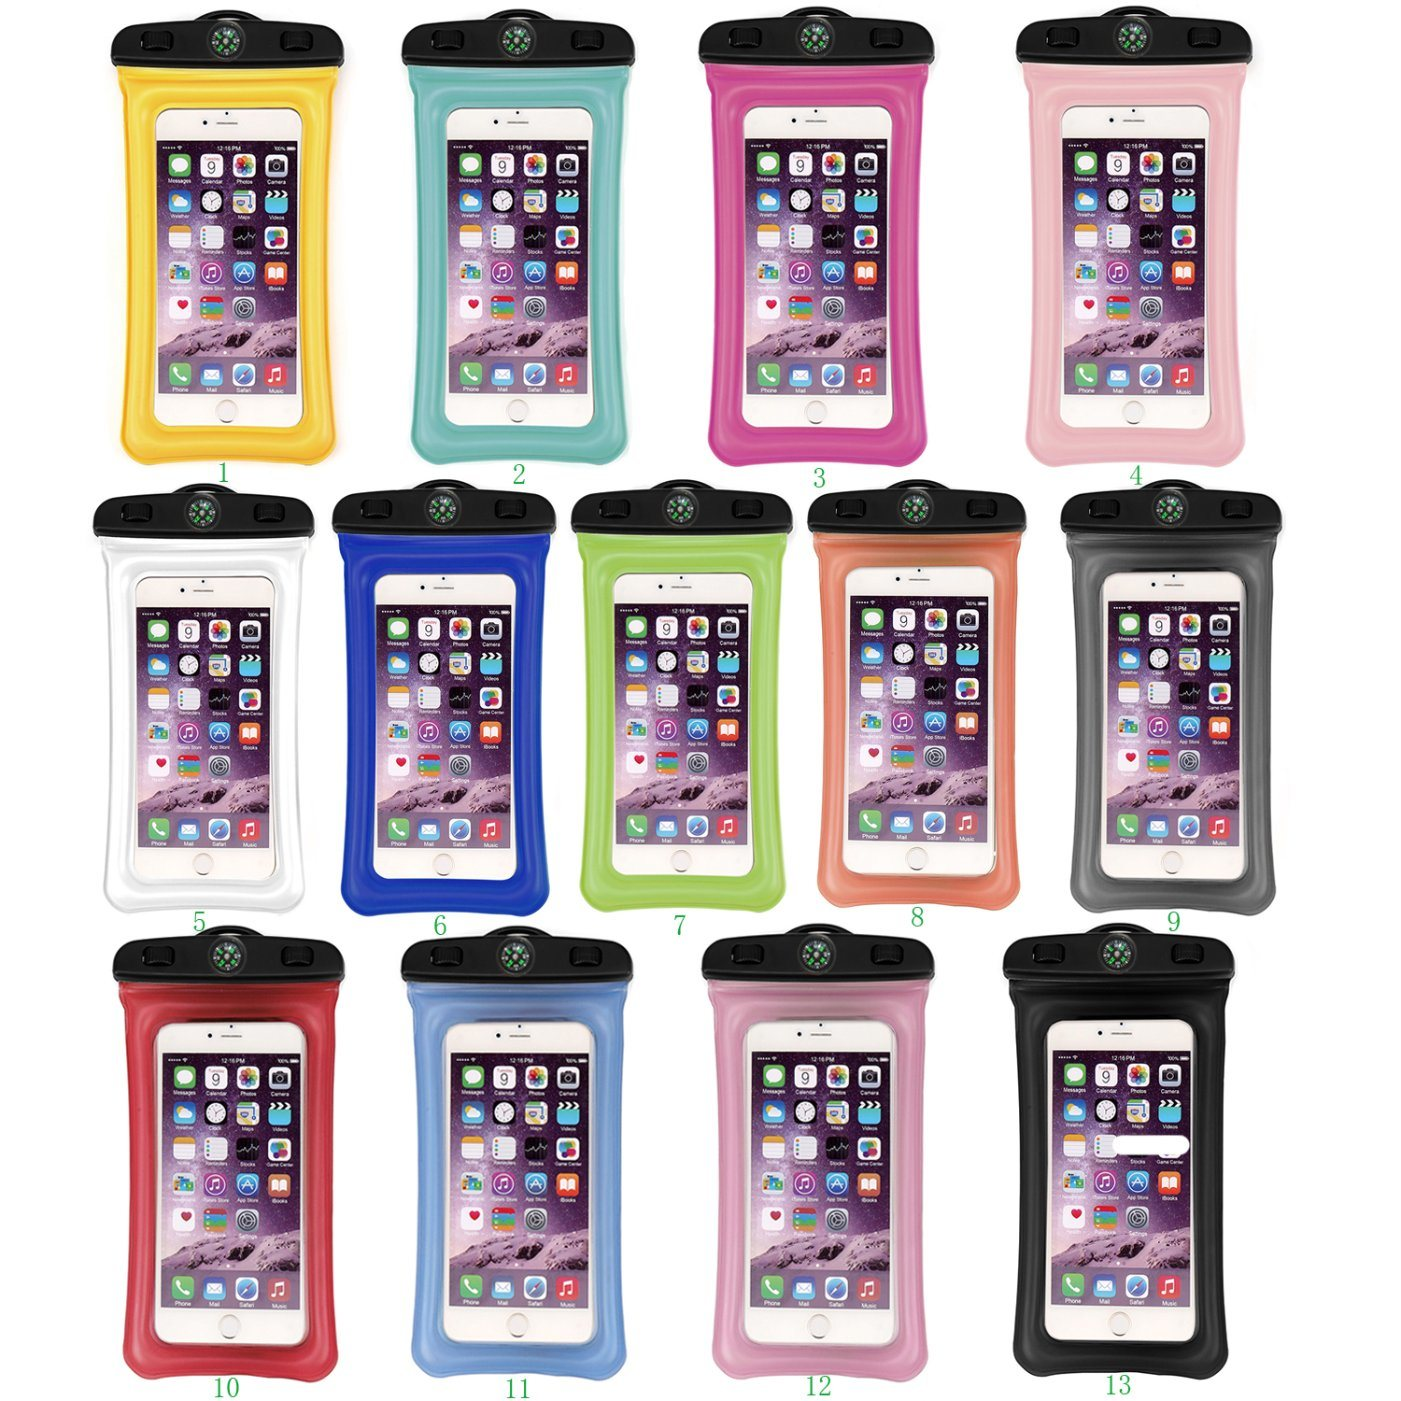 super popular 0d0ff 777da Universal Waterproof Case with Lanyard - Best Water Proof, Dustproof,  Shockproof Pouch Bag for iPhone X 8 Plus Samsung Galaxy S10 and All Smart  Phone